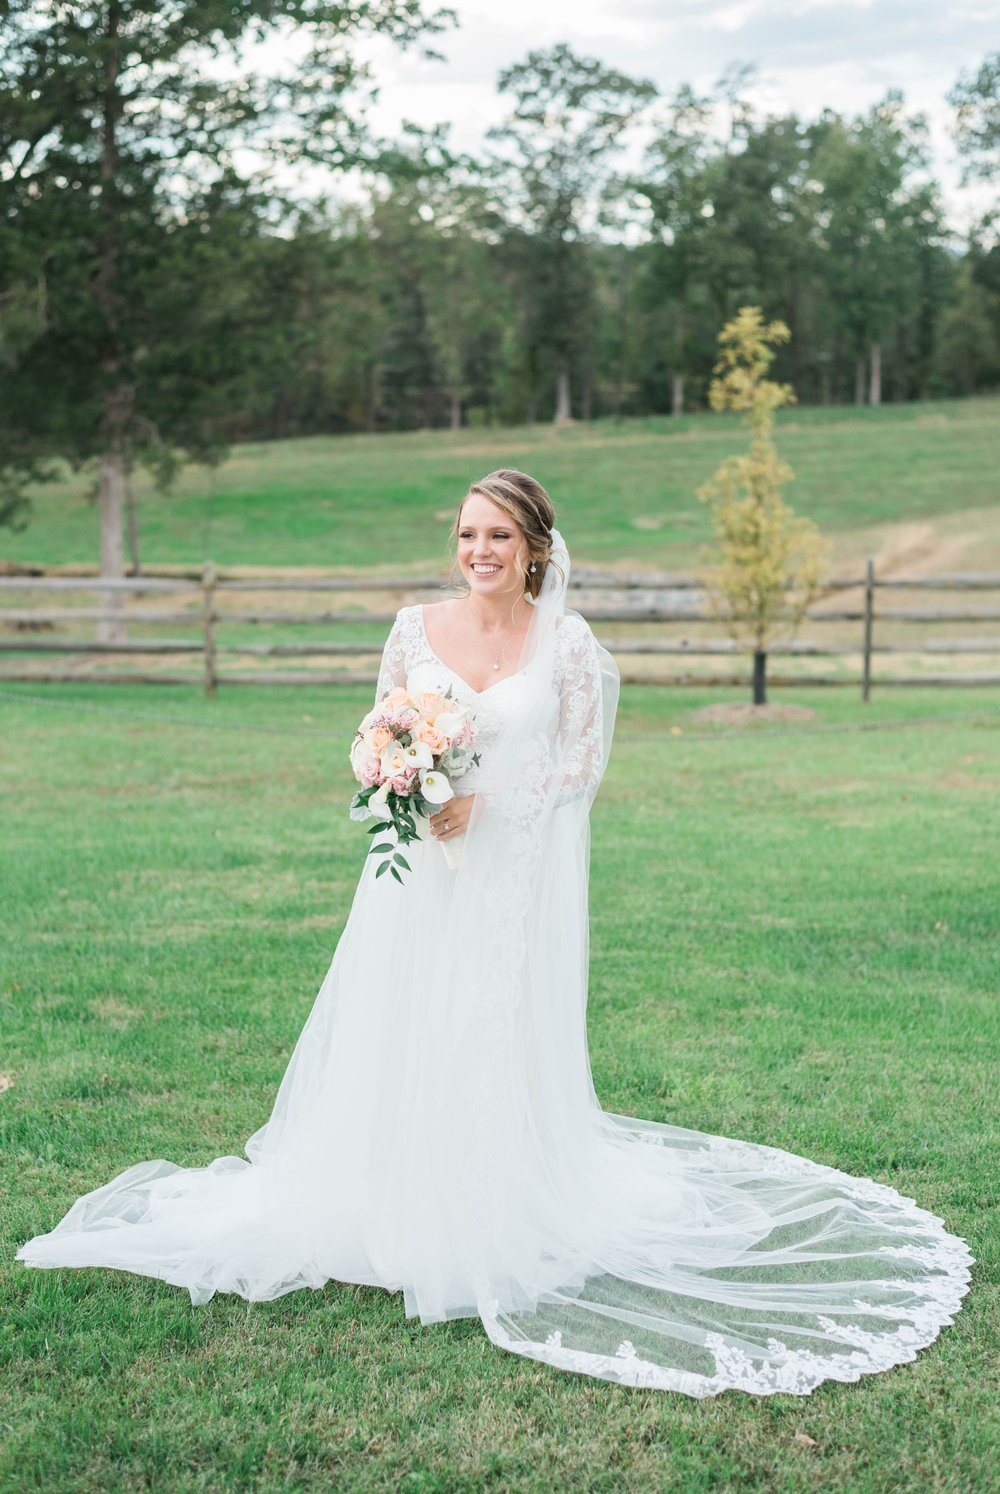 GrantElizabeth_wineryatbullrun_DCwedding_Virginiaweddingphotographer 4.jpg